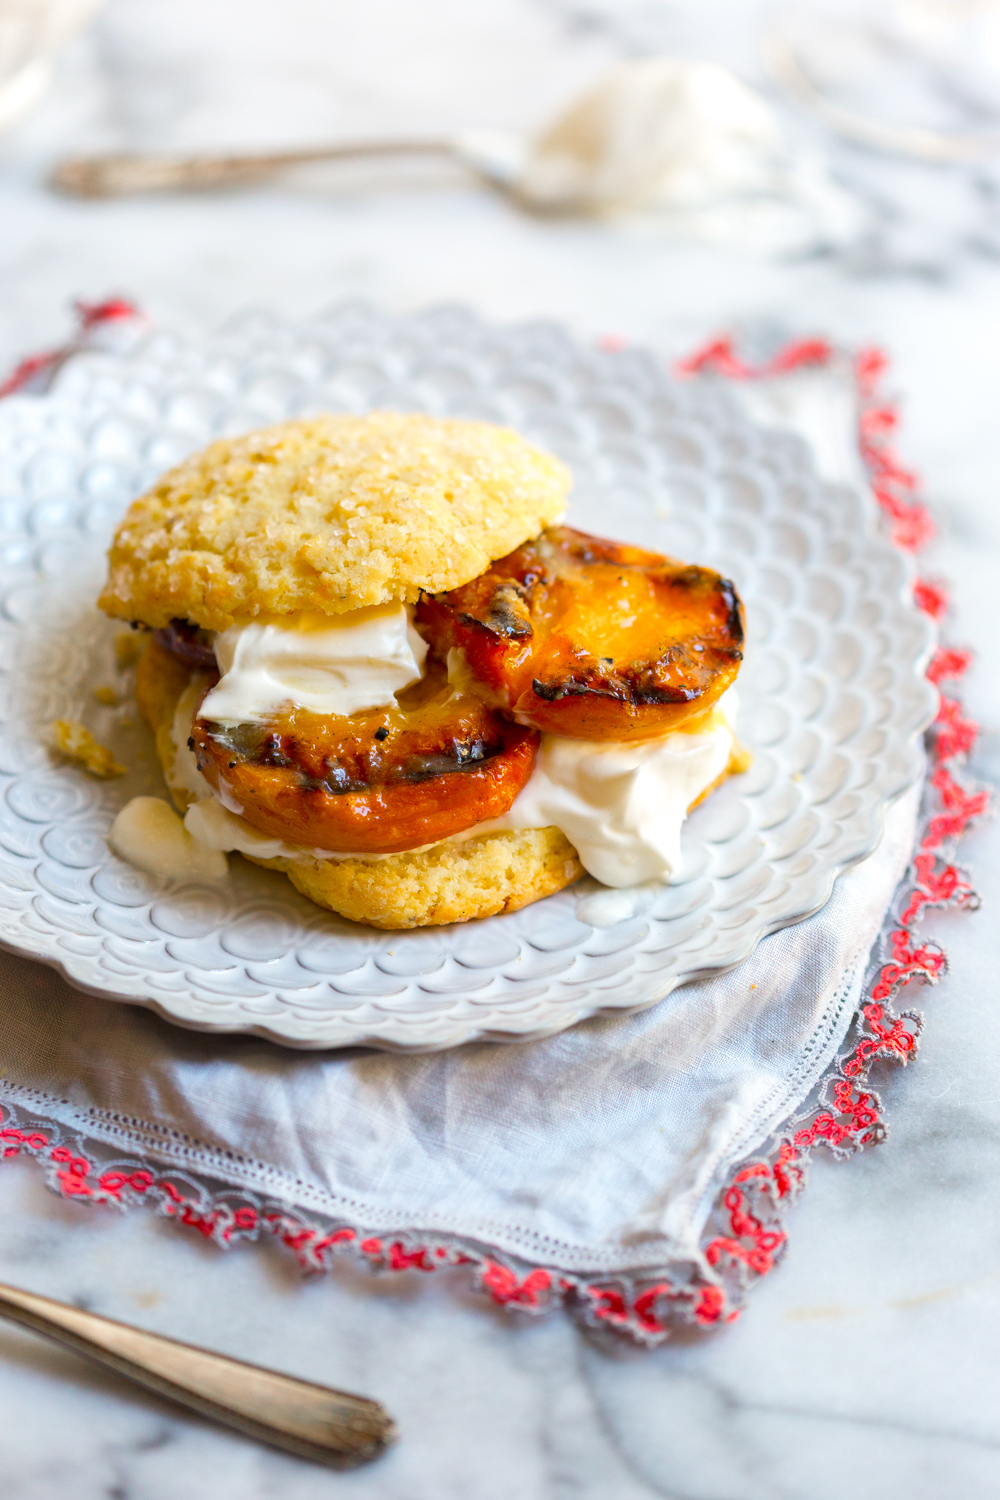 Grilled Nectarines Shortcakes with a hearty dollop of lemony crème fraîche.